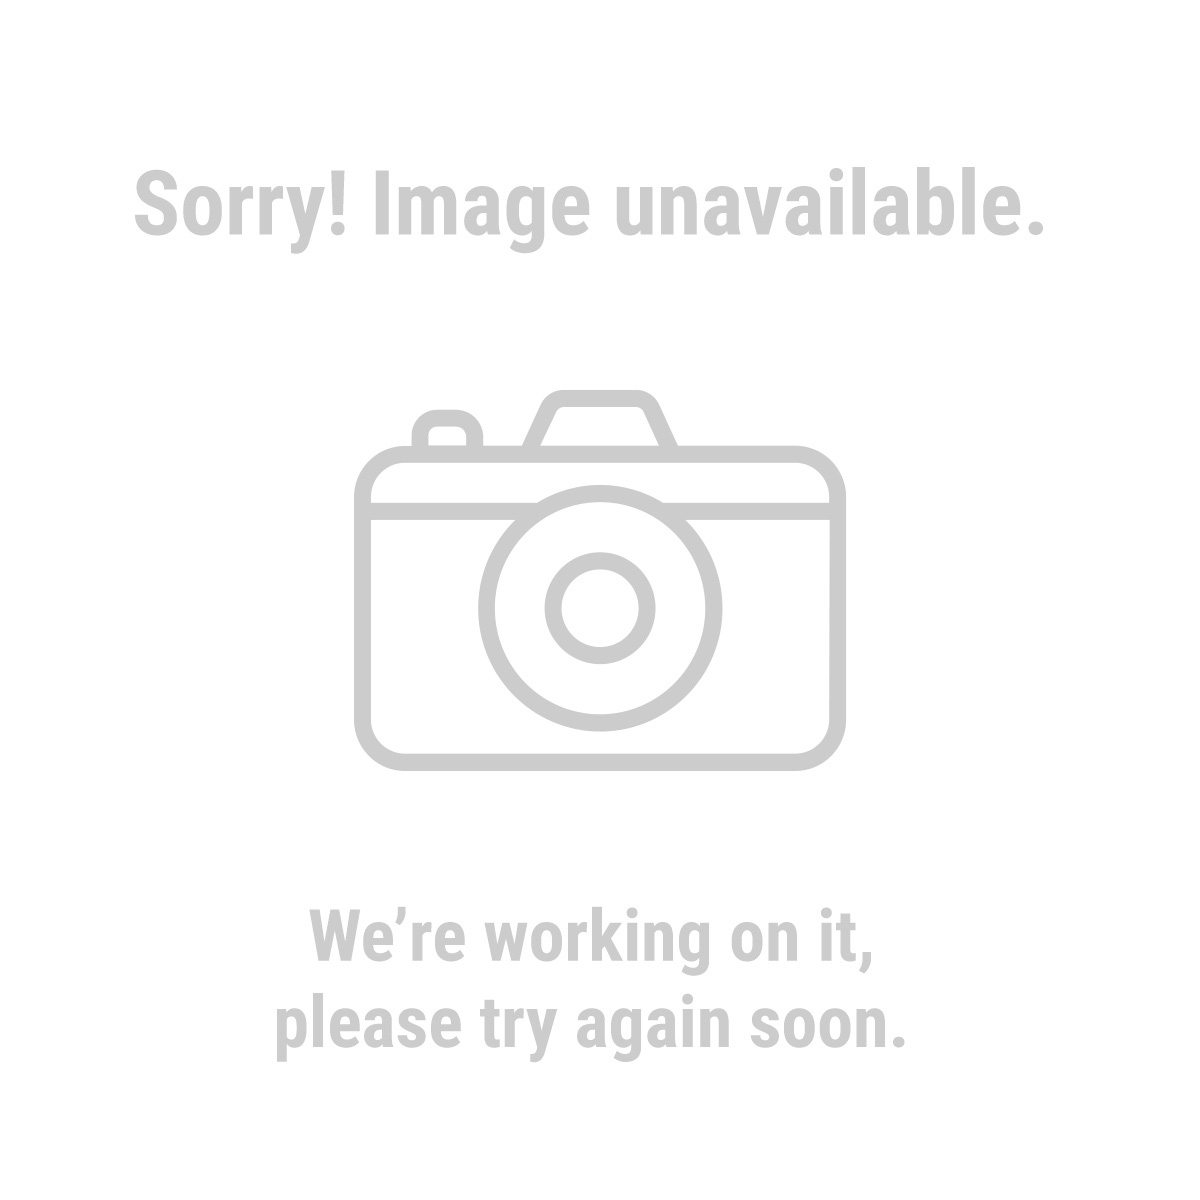 Pittsburgh 95114 22 Piece Screwdriver Set